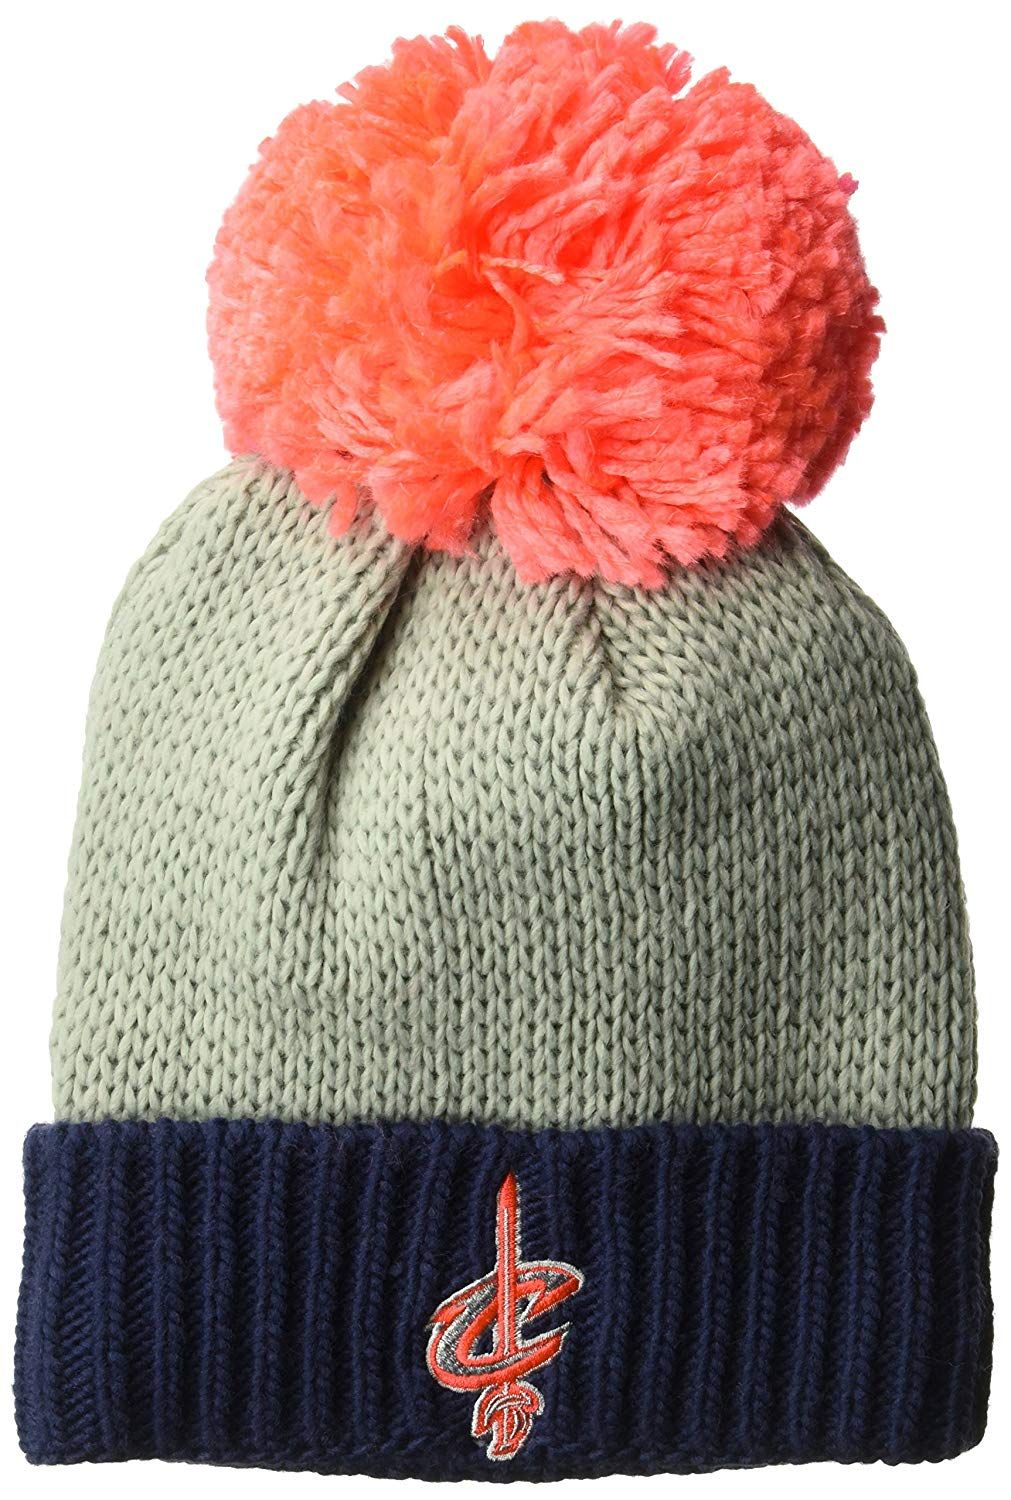 b68916eed41 NBA Cleveland Cavaliers Women s Cuffed Knit Hat with Neon Pom